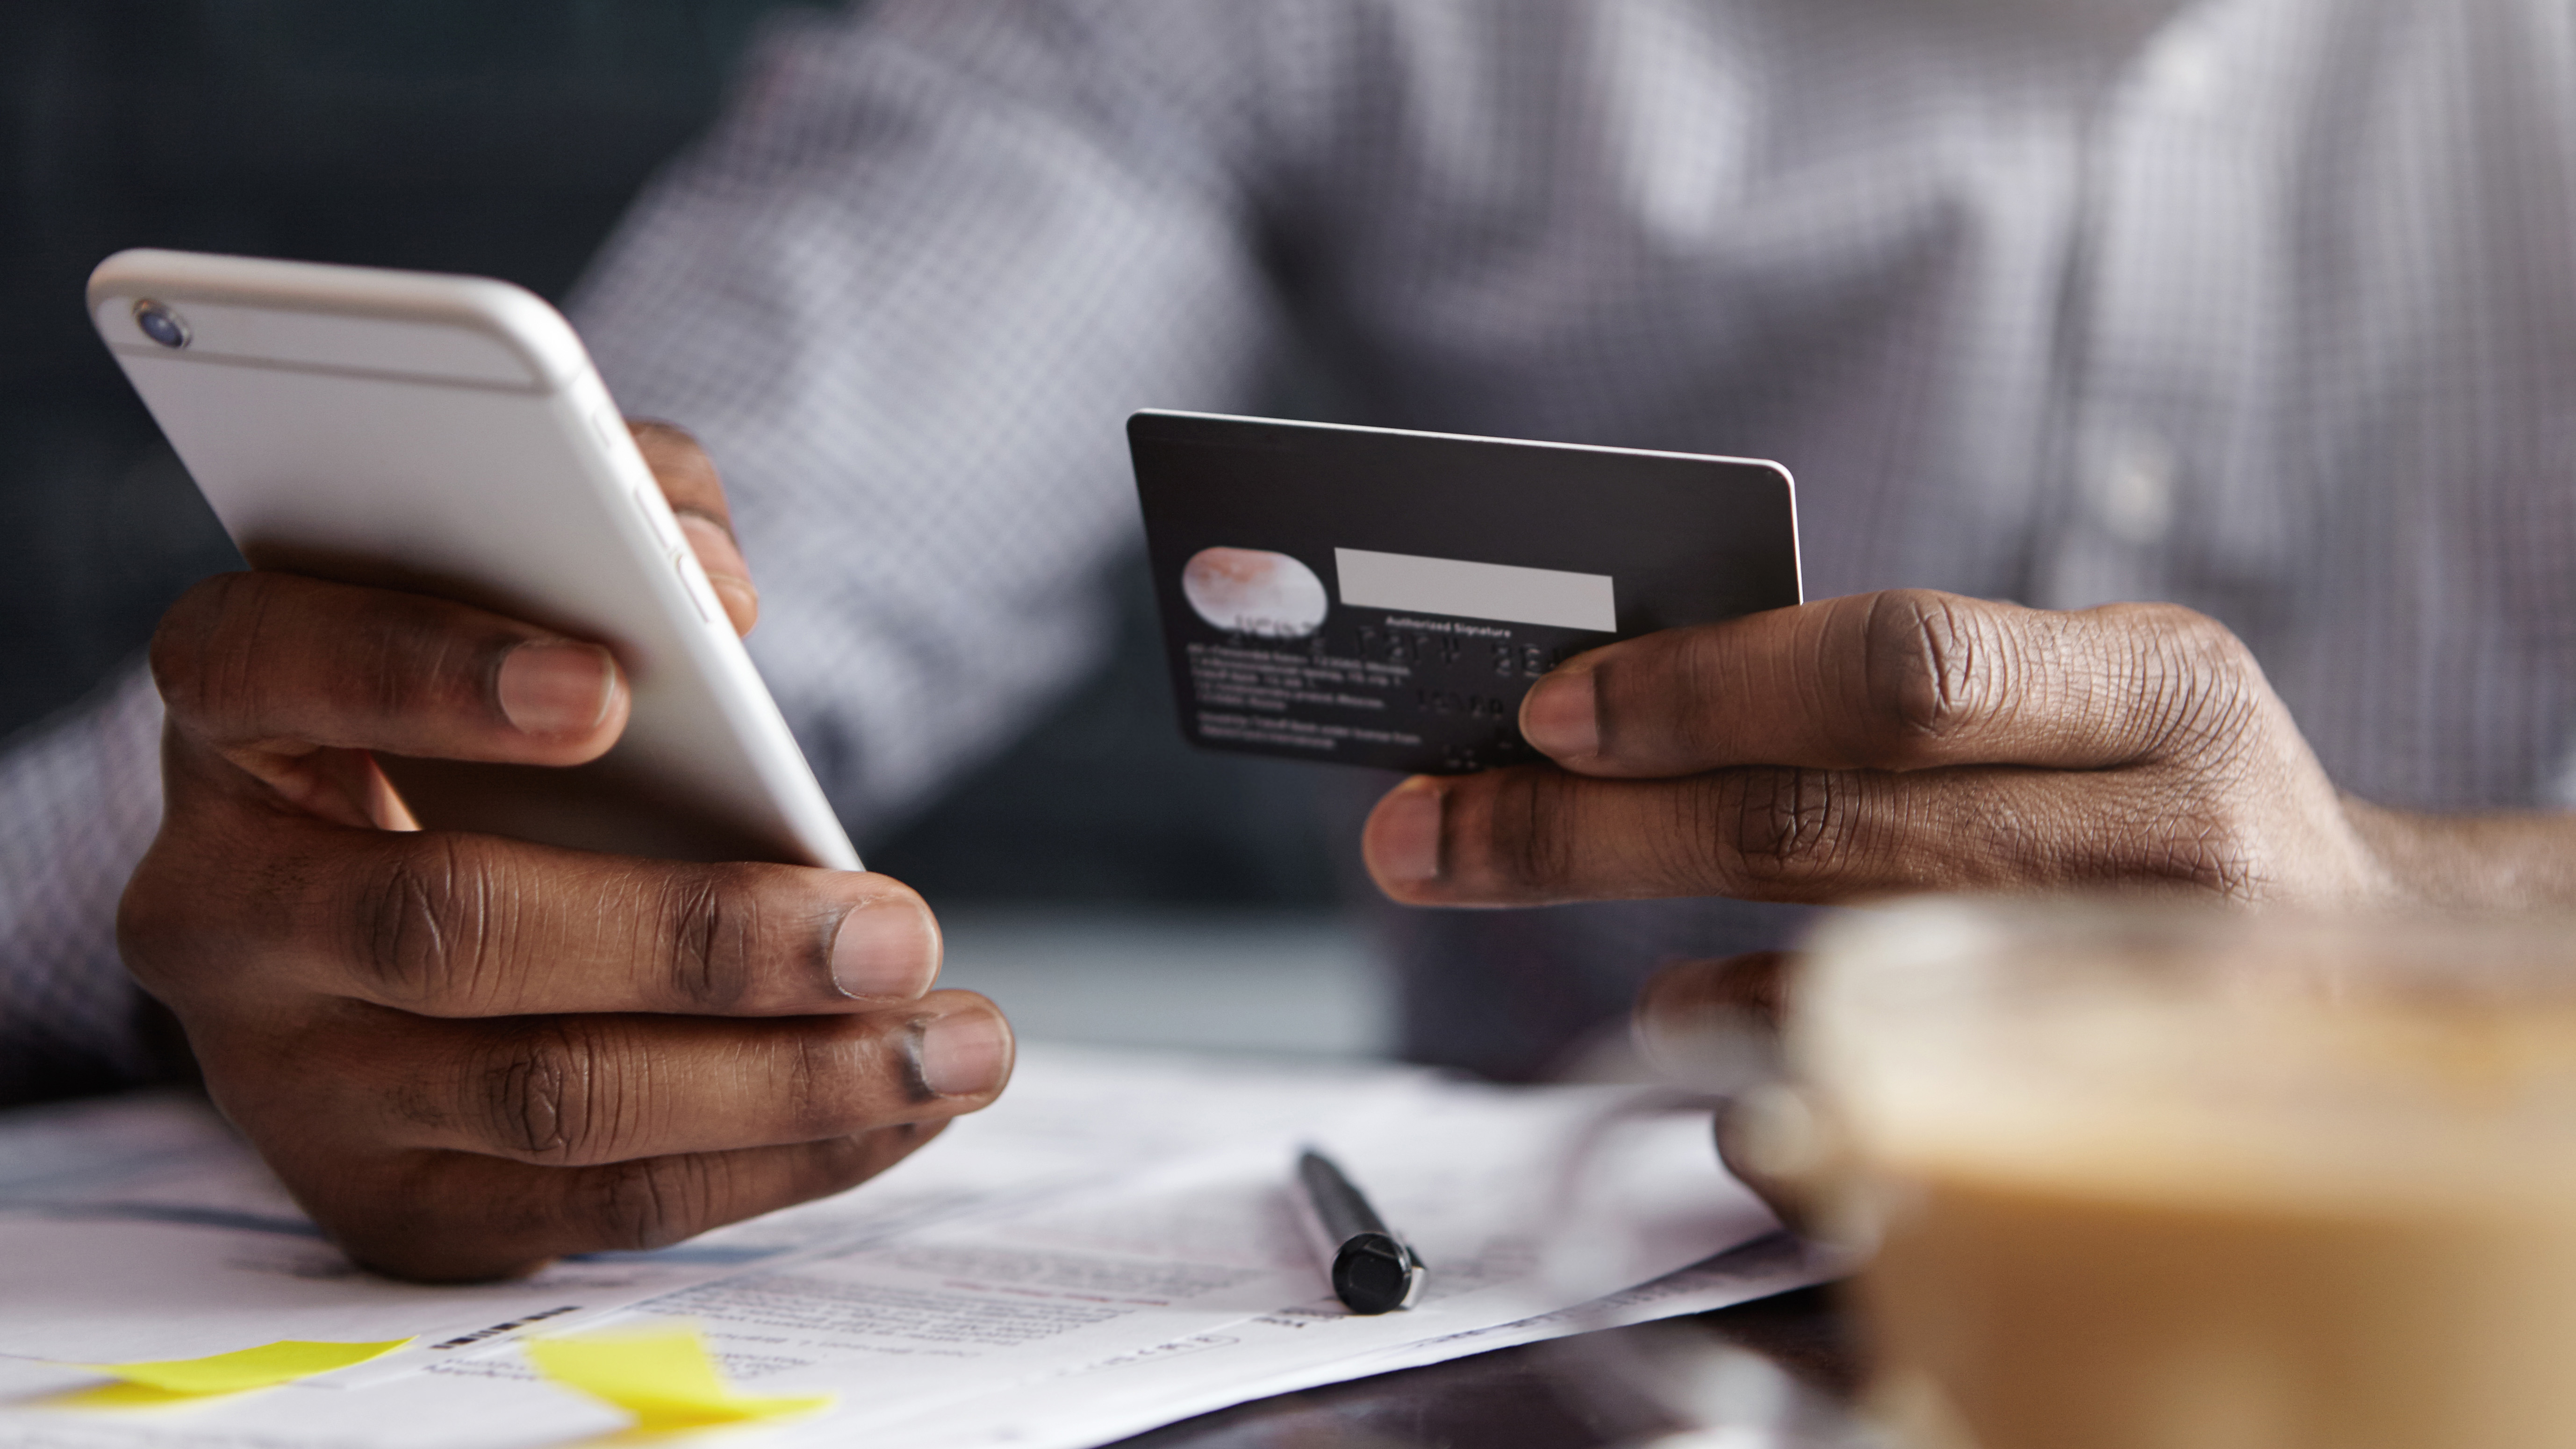 3 Benefits of Mobile Access to Credit Card Account